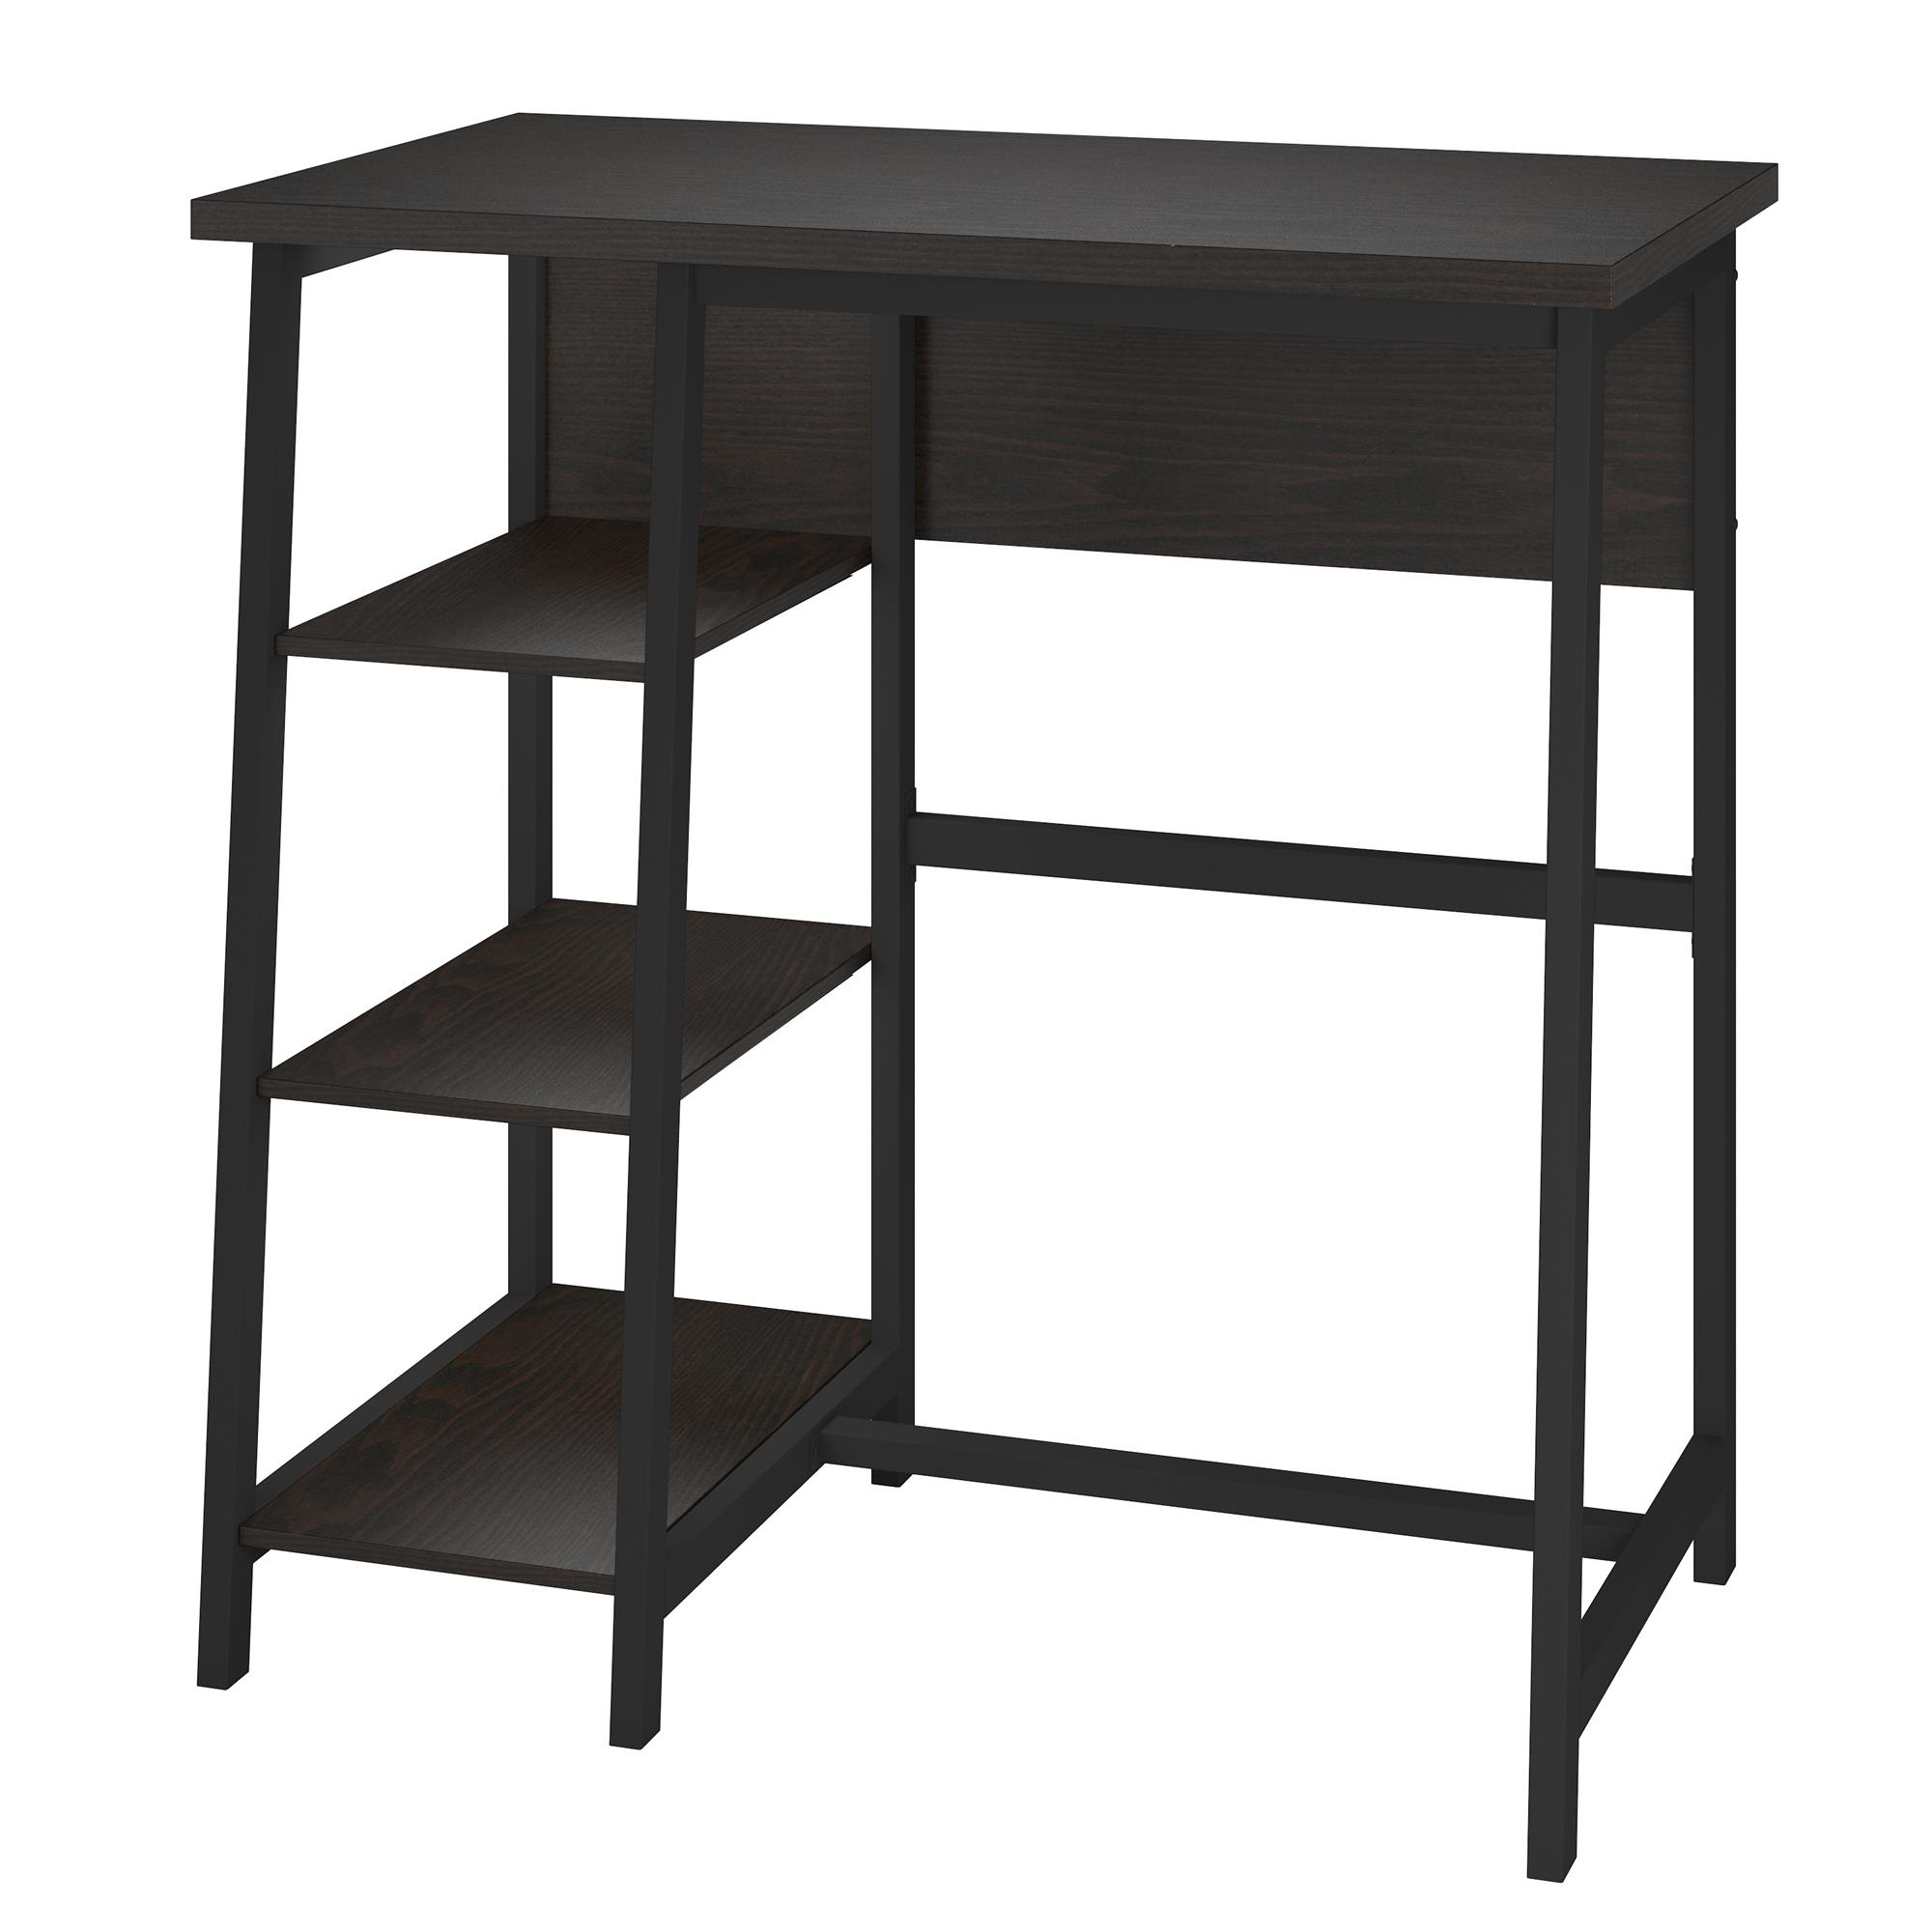 Mainstays Standing Computer Desk with Multiple Shelves